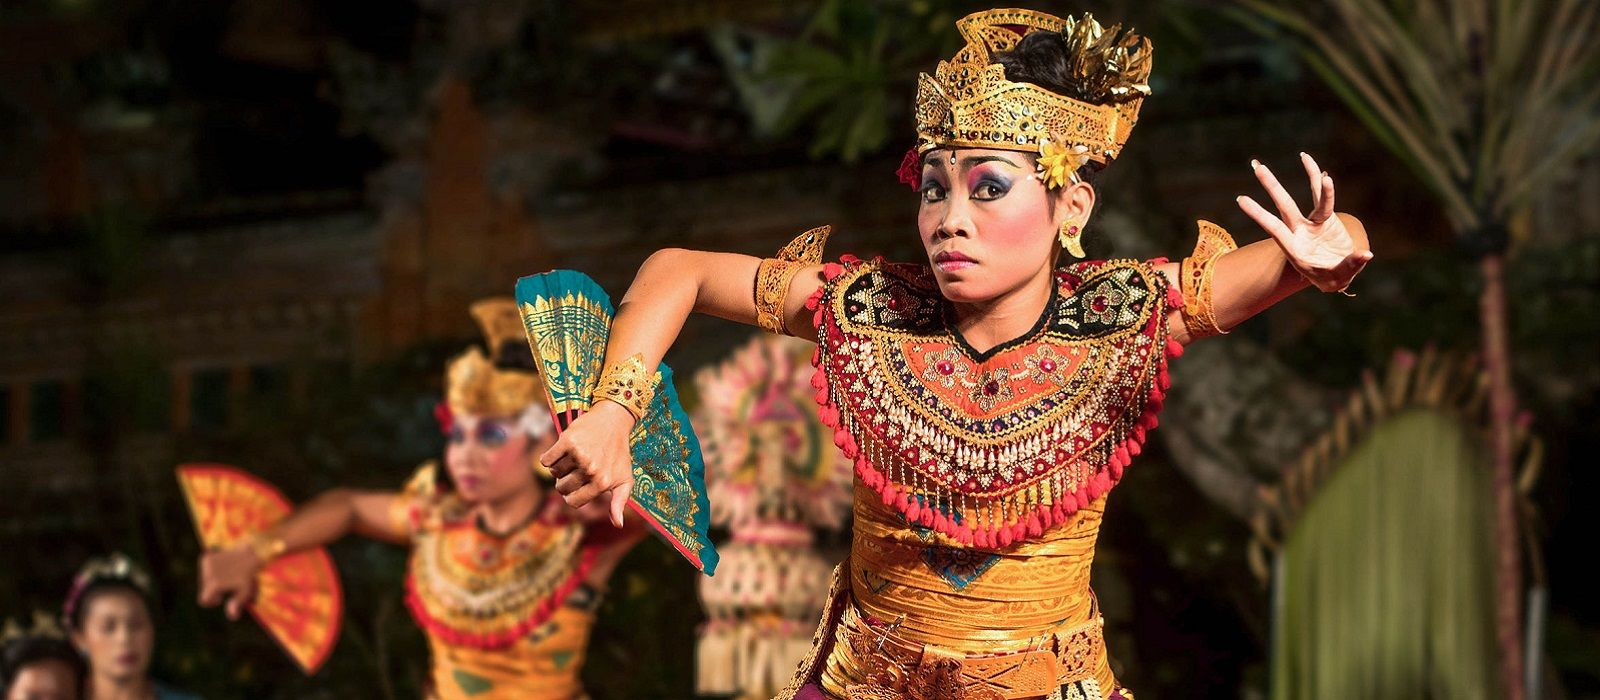 Traditional Balinese Legong Dance Performance in Ubud, Bali